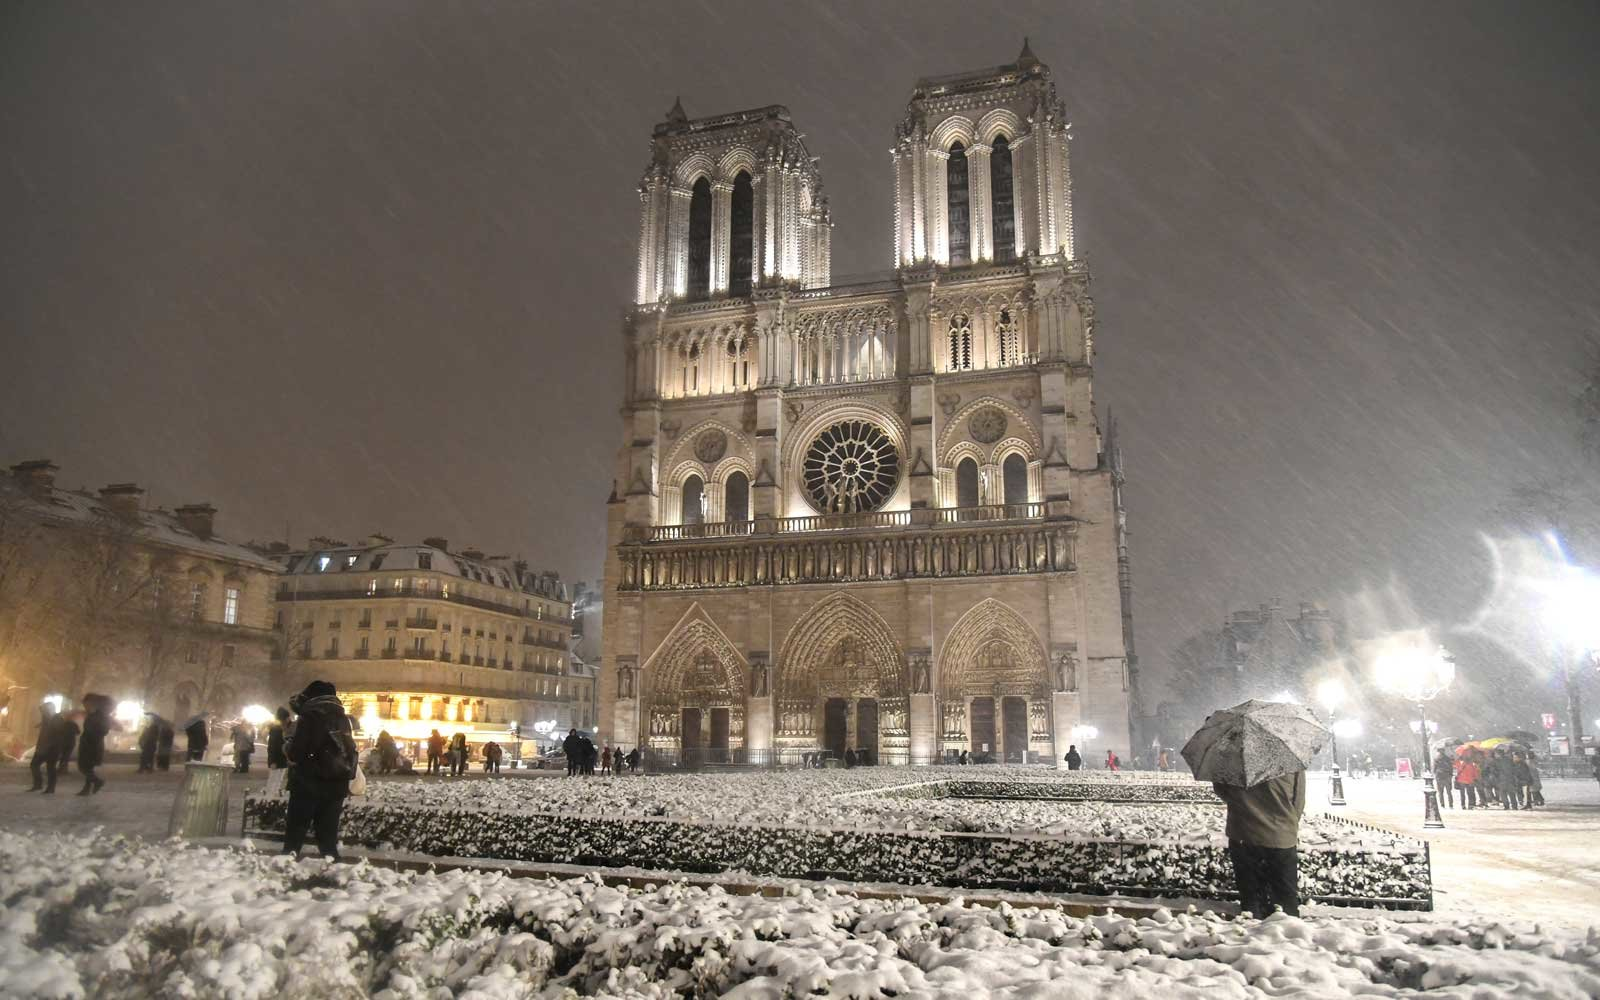 An evening snow storm at Notre Dame